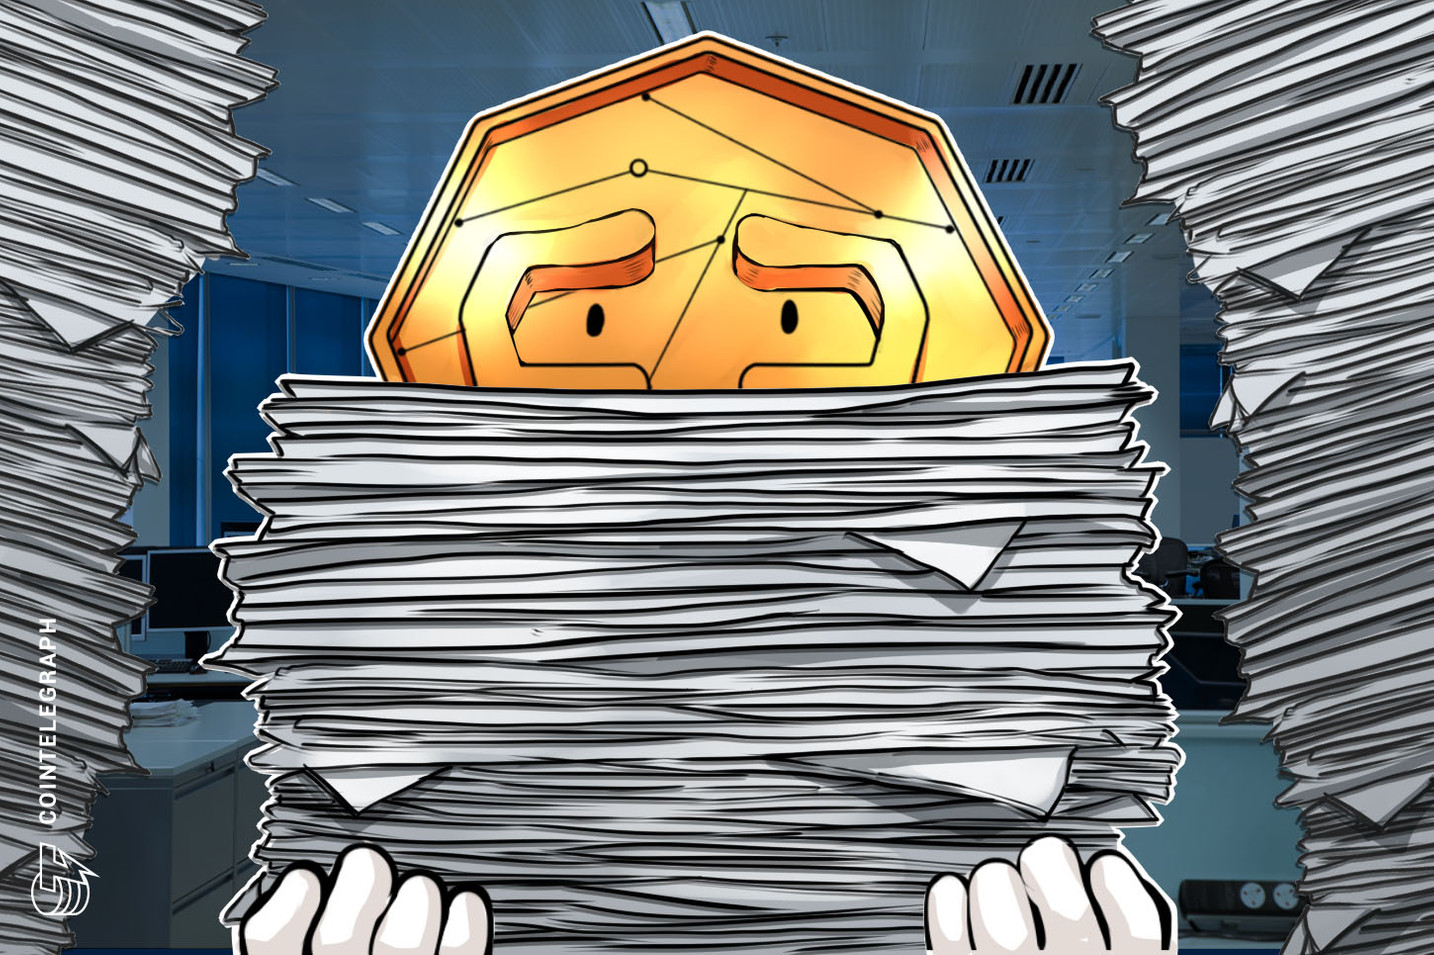 Philippines Securities Regulator Issues Draft of ICO Rules, Requests Feedback From Public